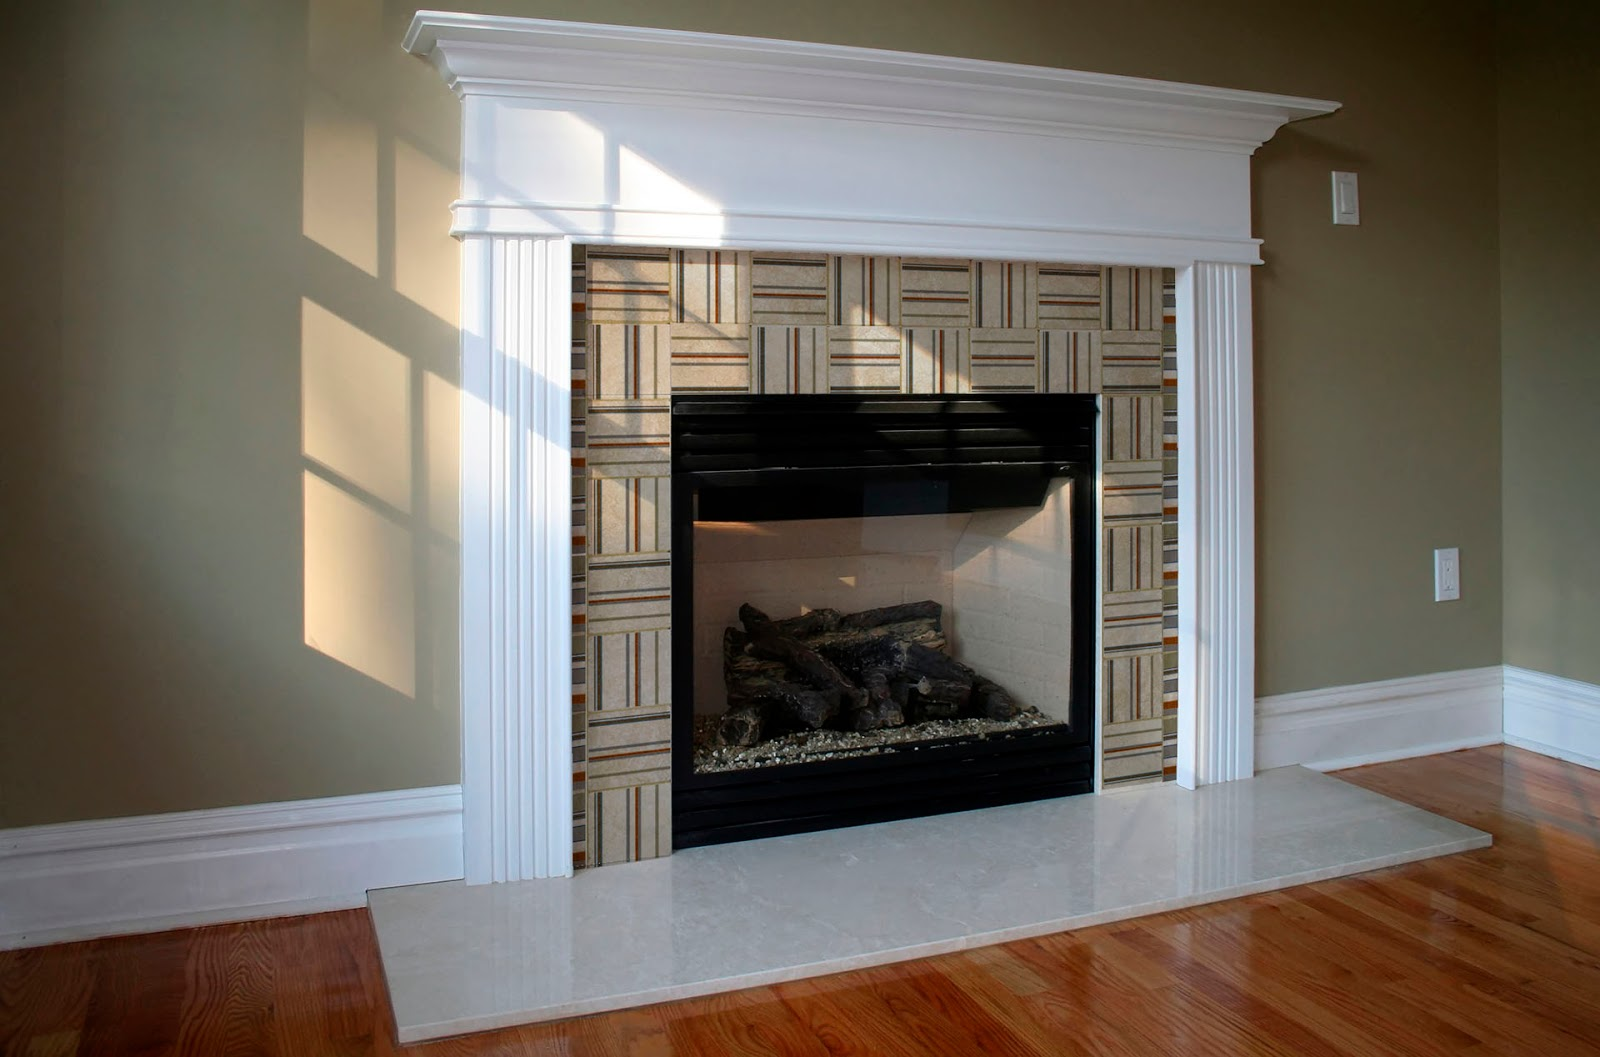 tiles from our modern collection used in a fireplace surround